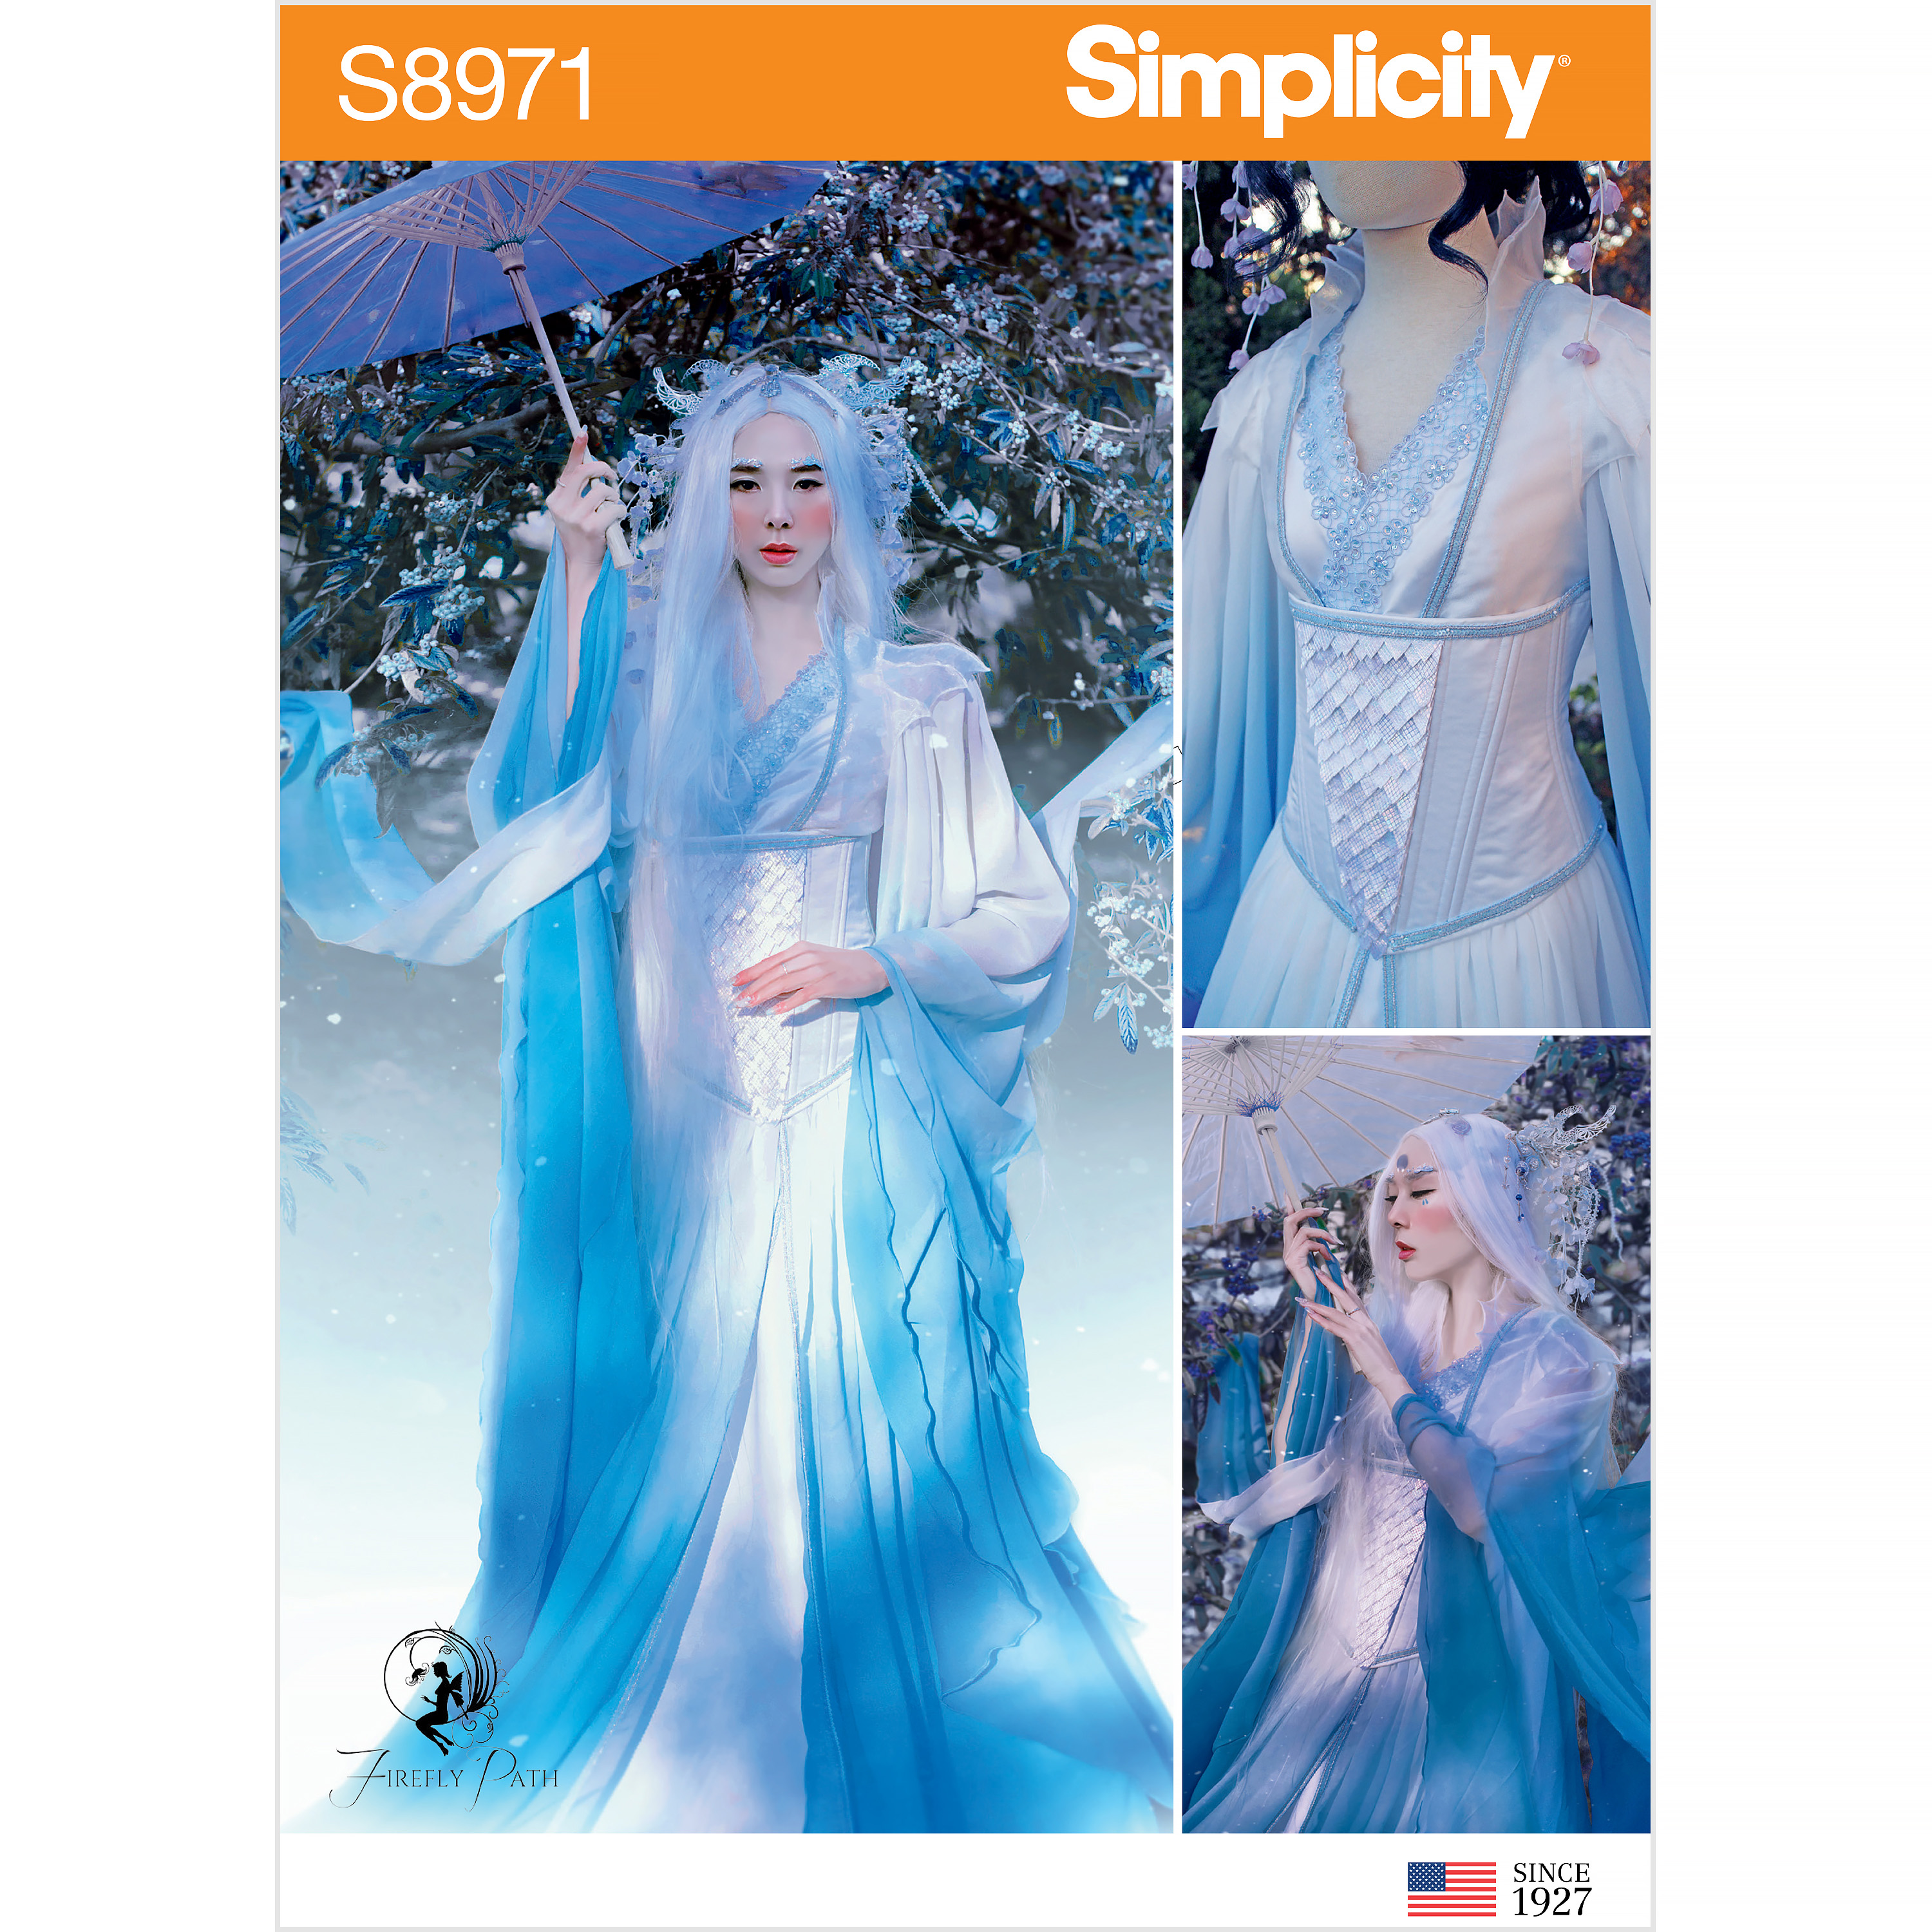 Simplicity sewing pattern 8971 costumes H5 6-8-10-12-14